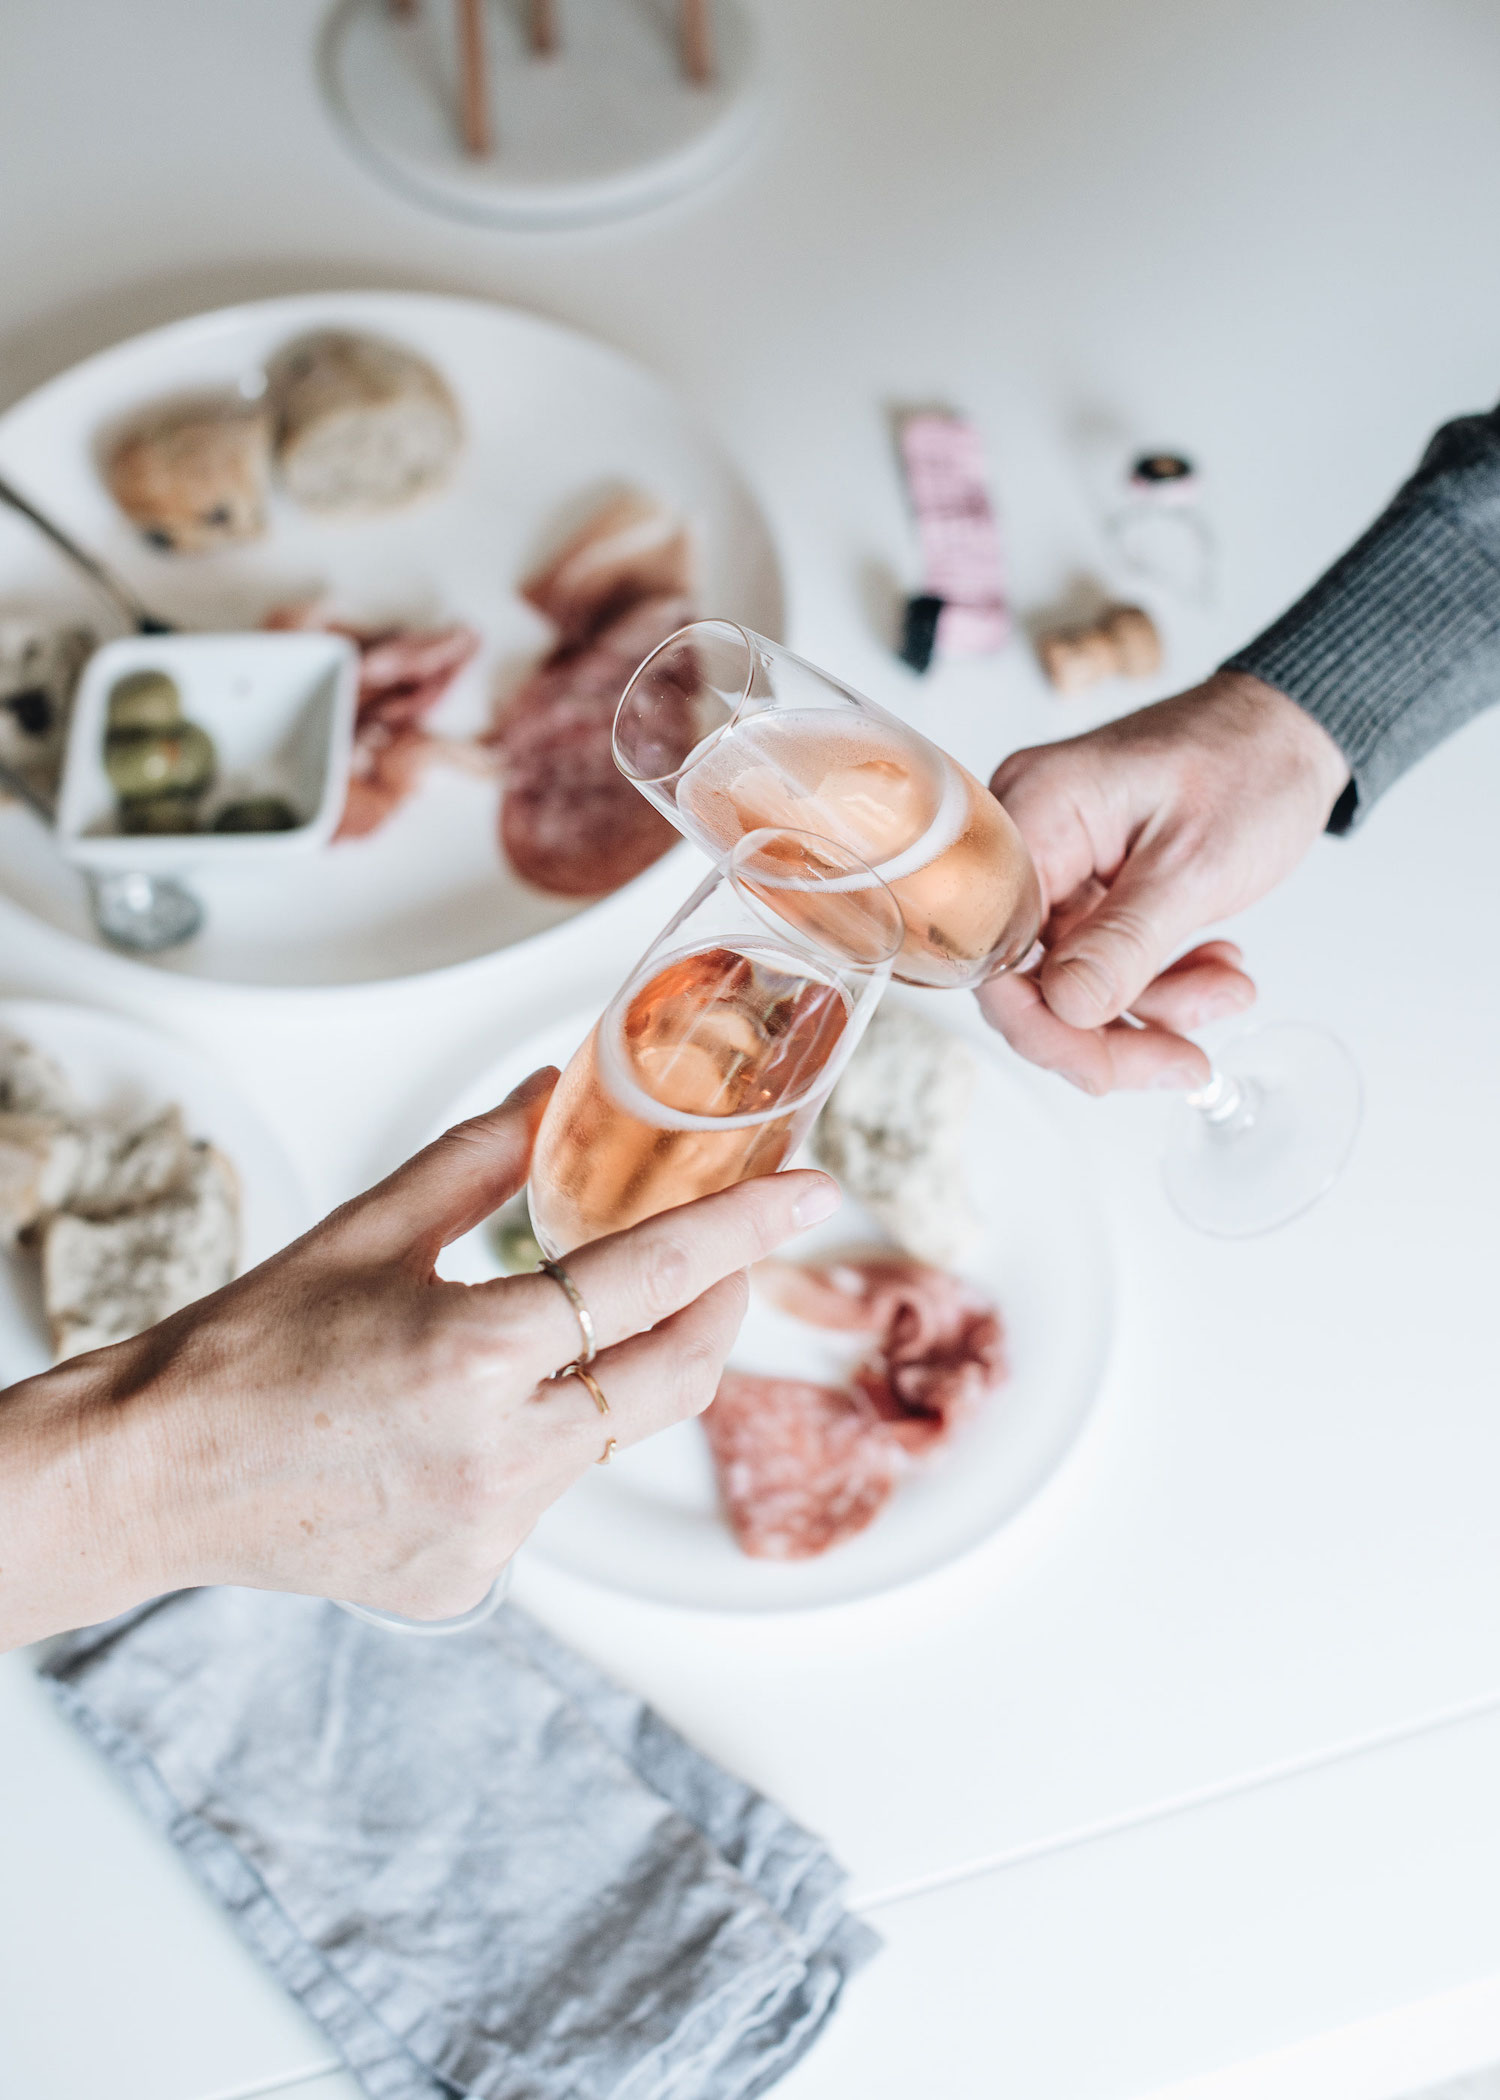 8 toasting-with-a-glass-of-pink-champagne.jpg